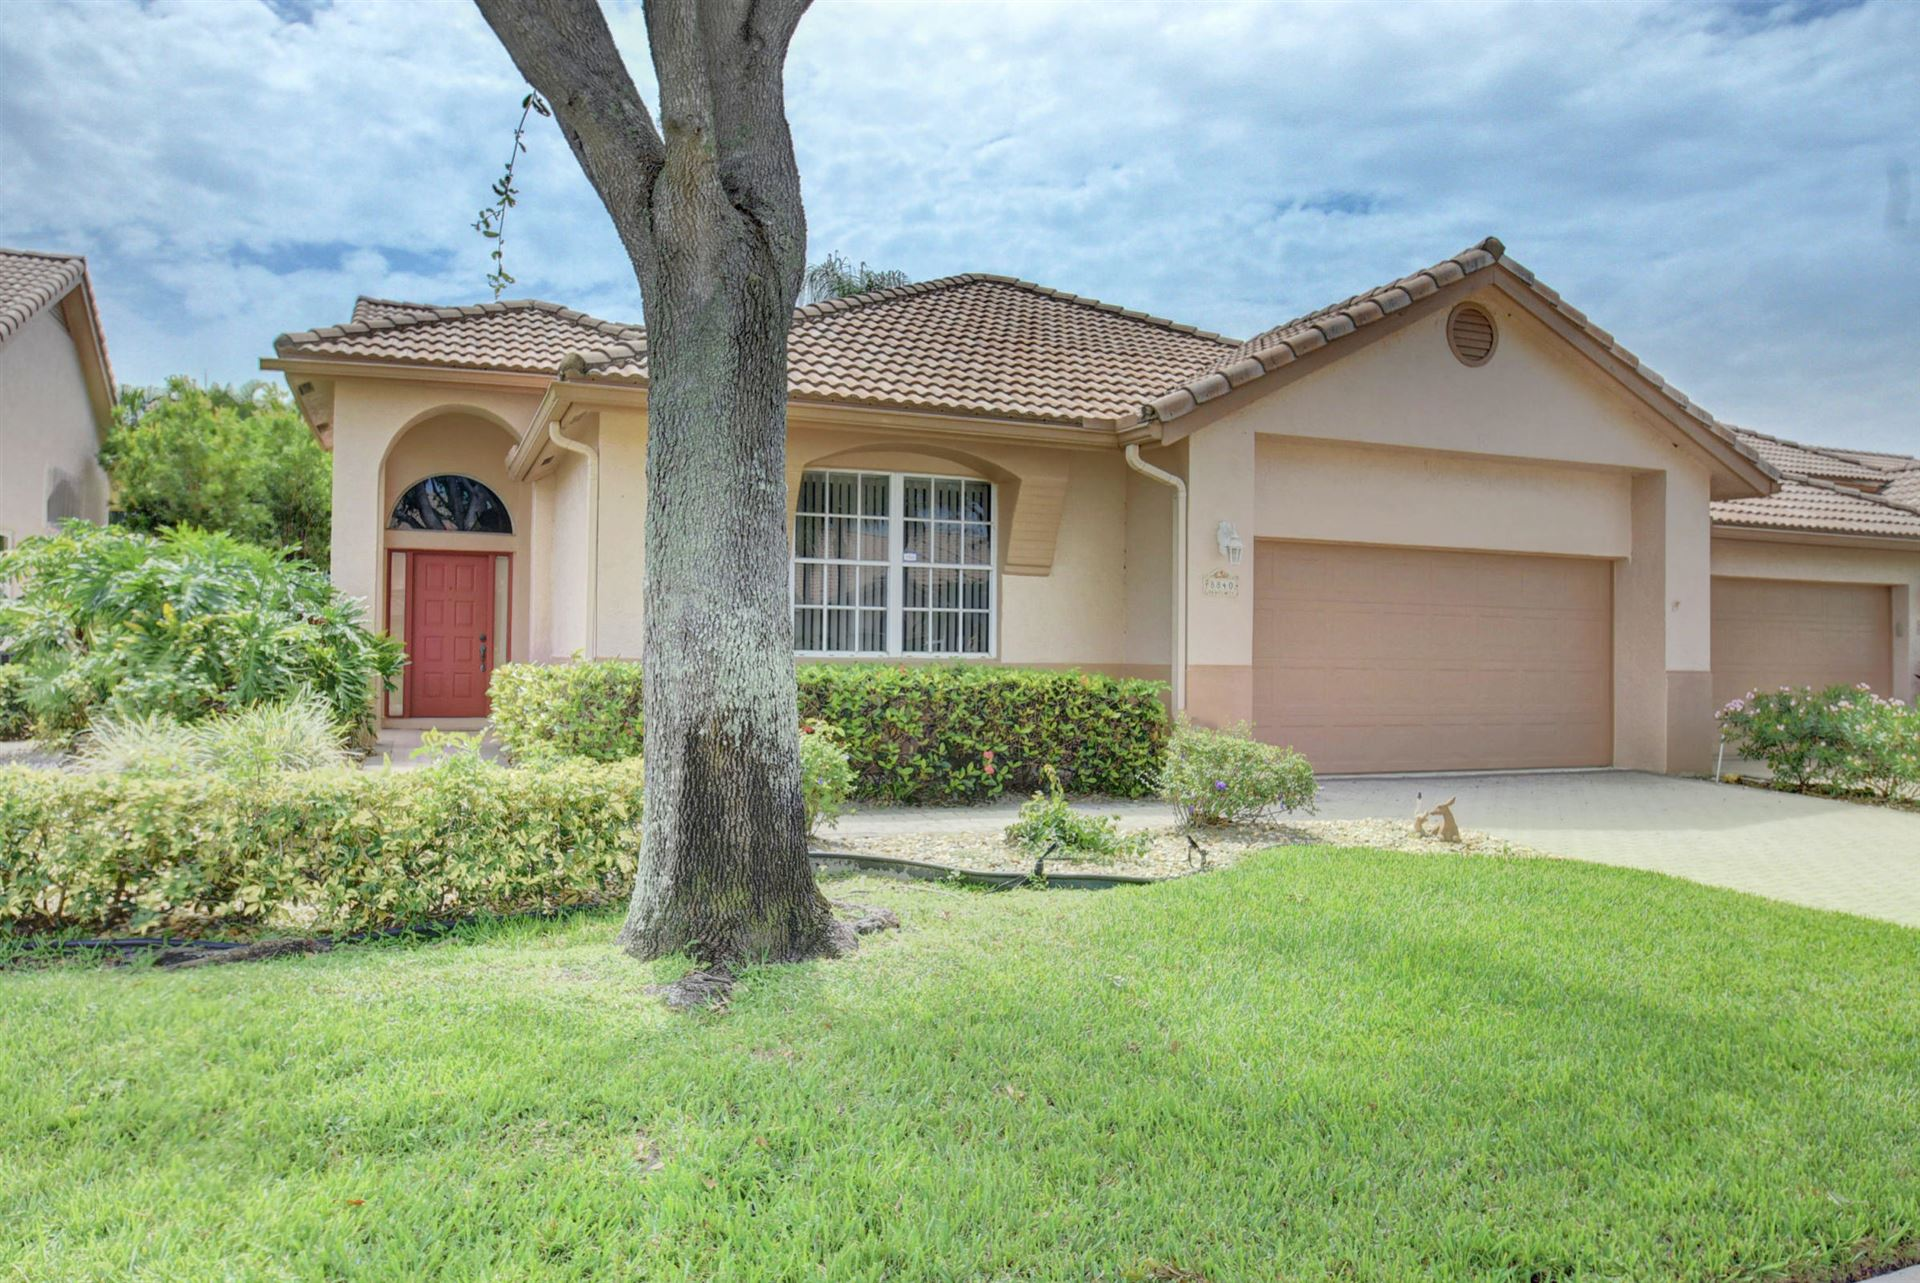 8840 Shoal Creek Lane, Boynton Beach, FL 33472 - #: RX-10683122